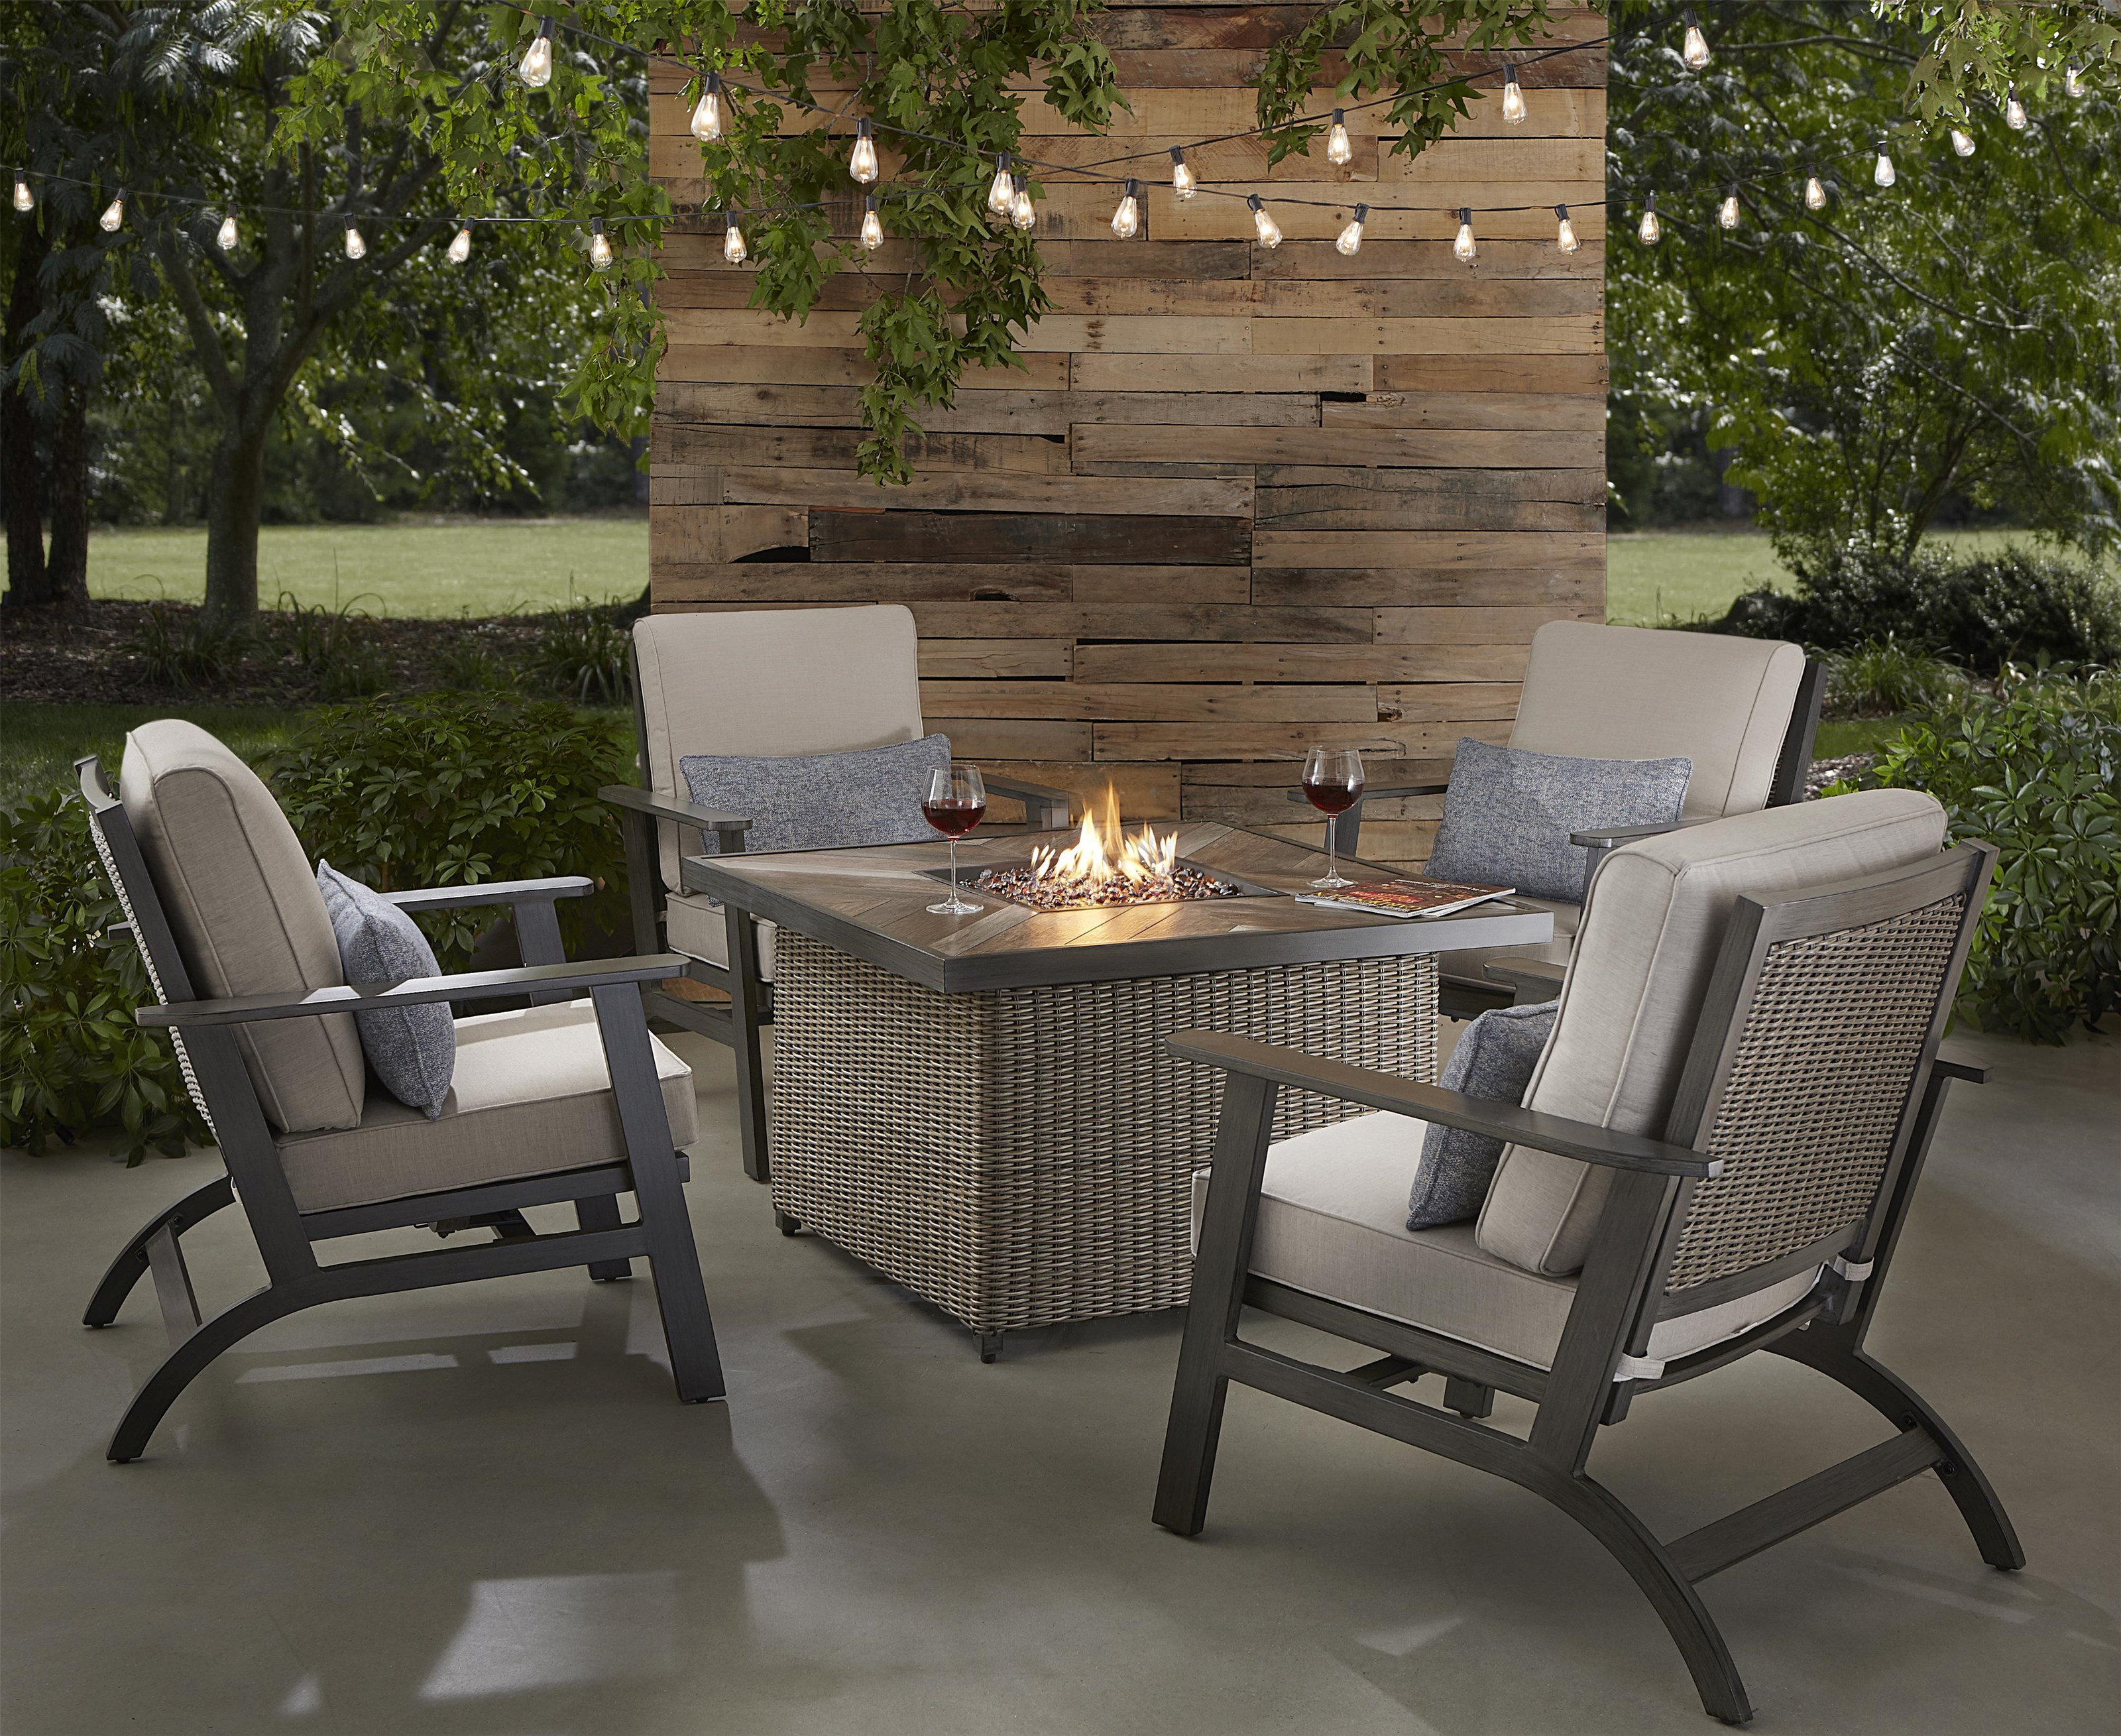 Firepit and 4 Spring Chairs